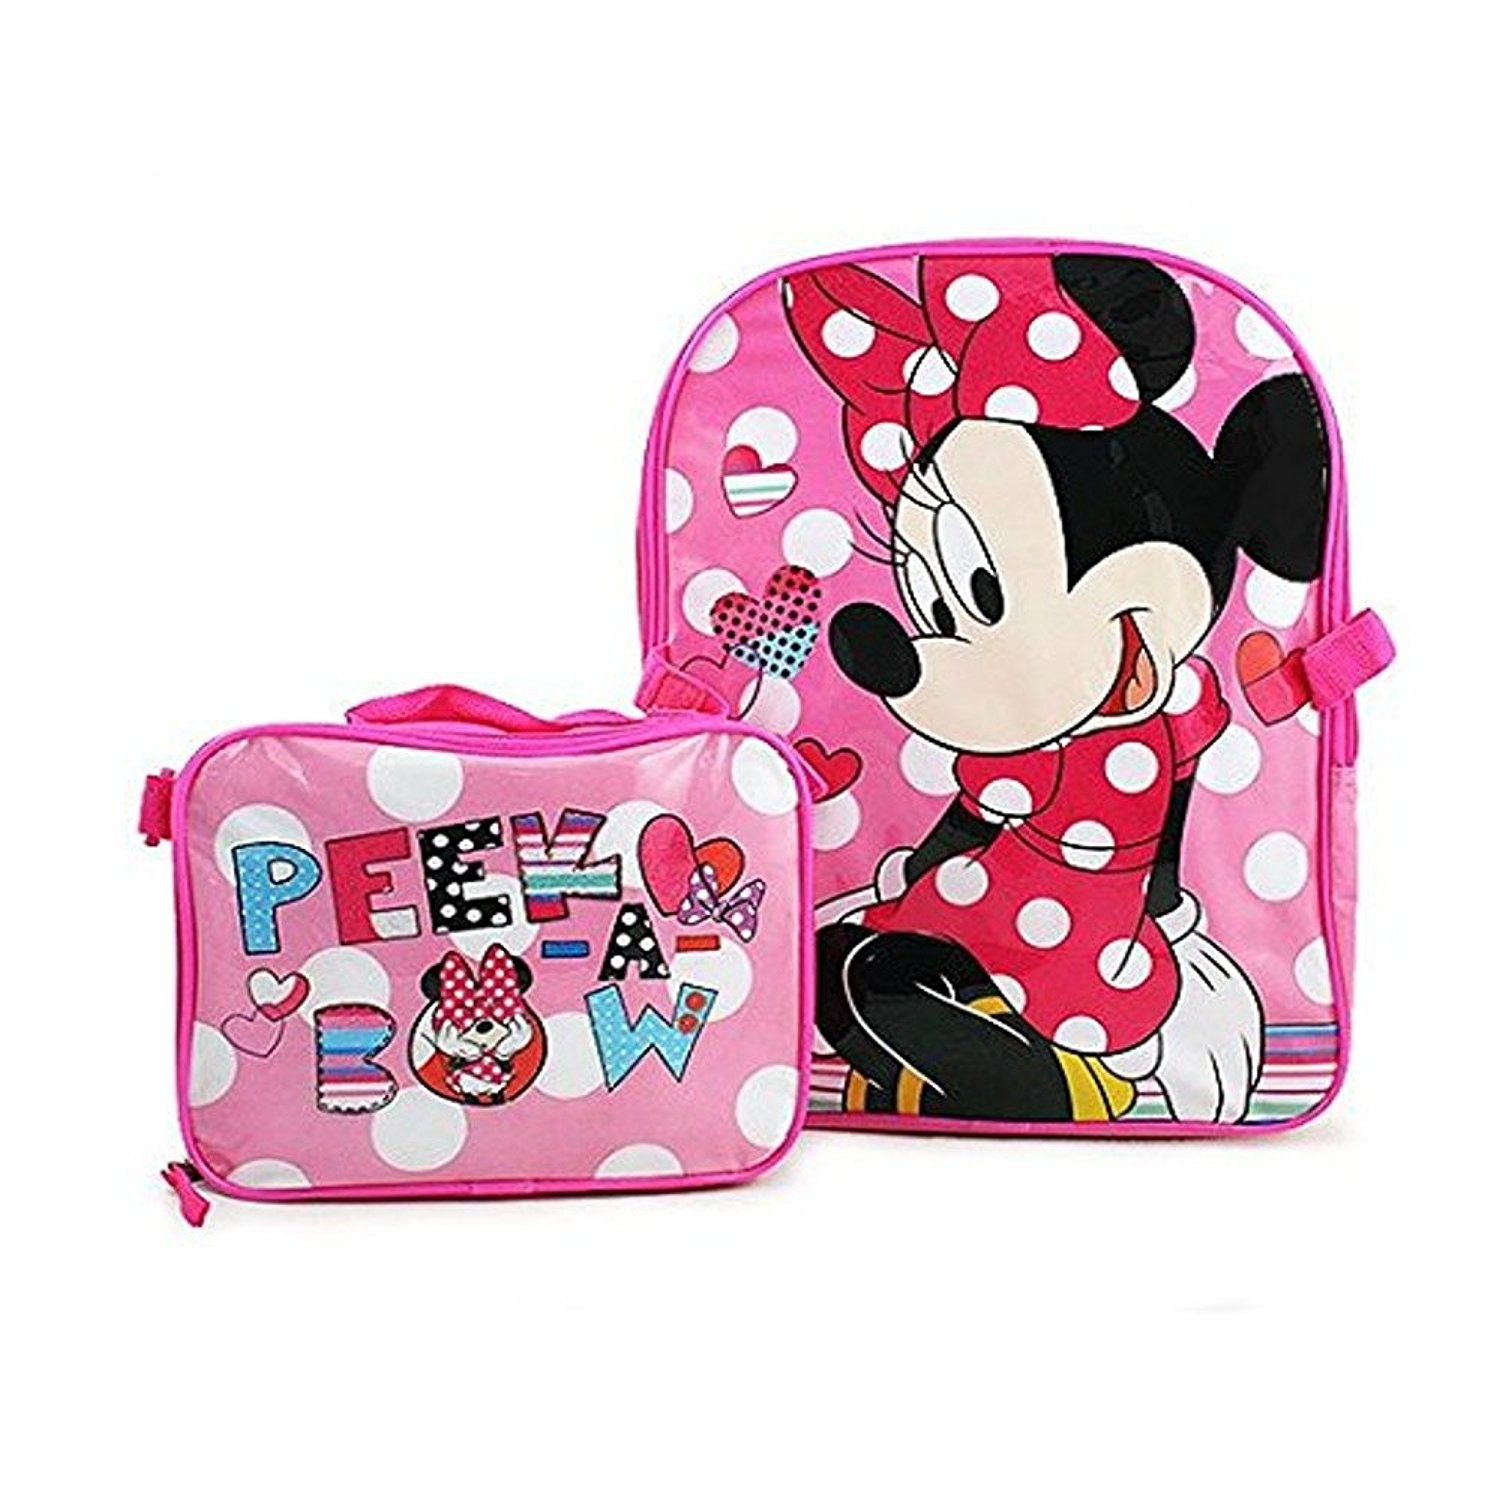 b27cb2984c6 Disney Minnie Mouse Backpack and Lunch Bag Set 15 Inch   Backpacks ...